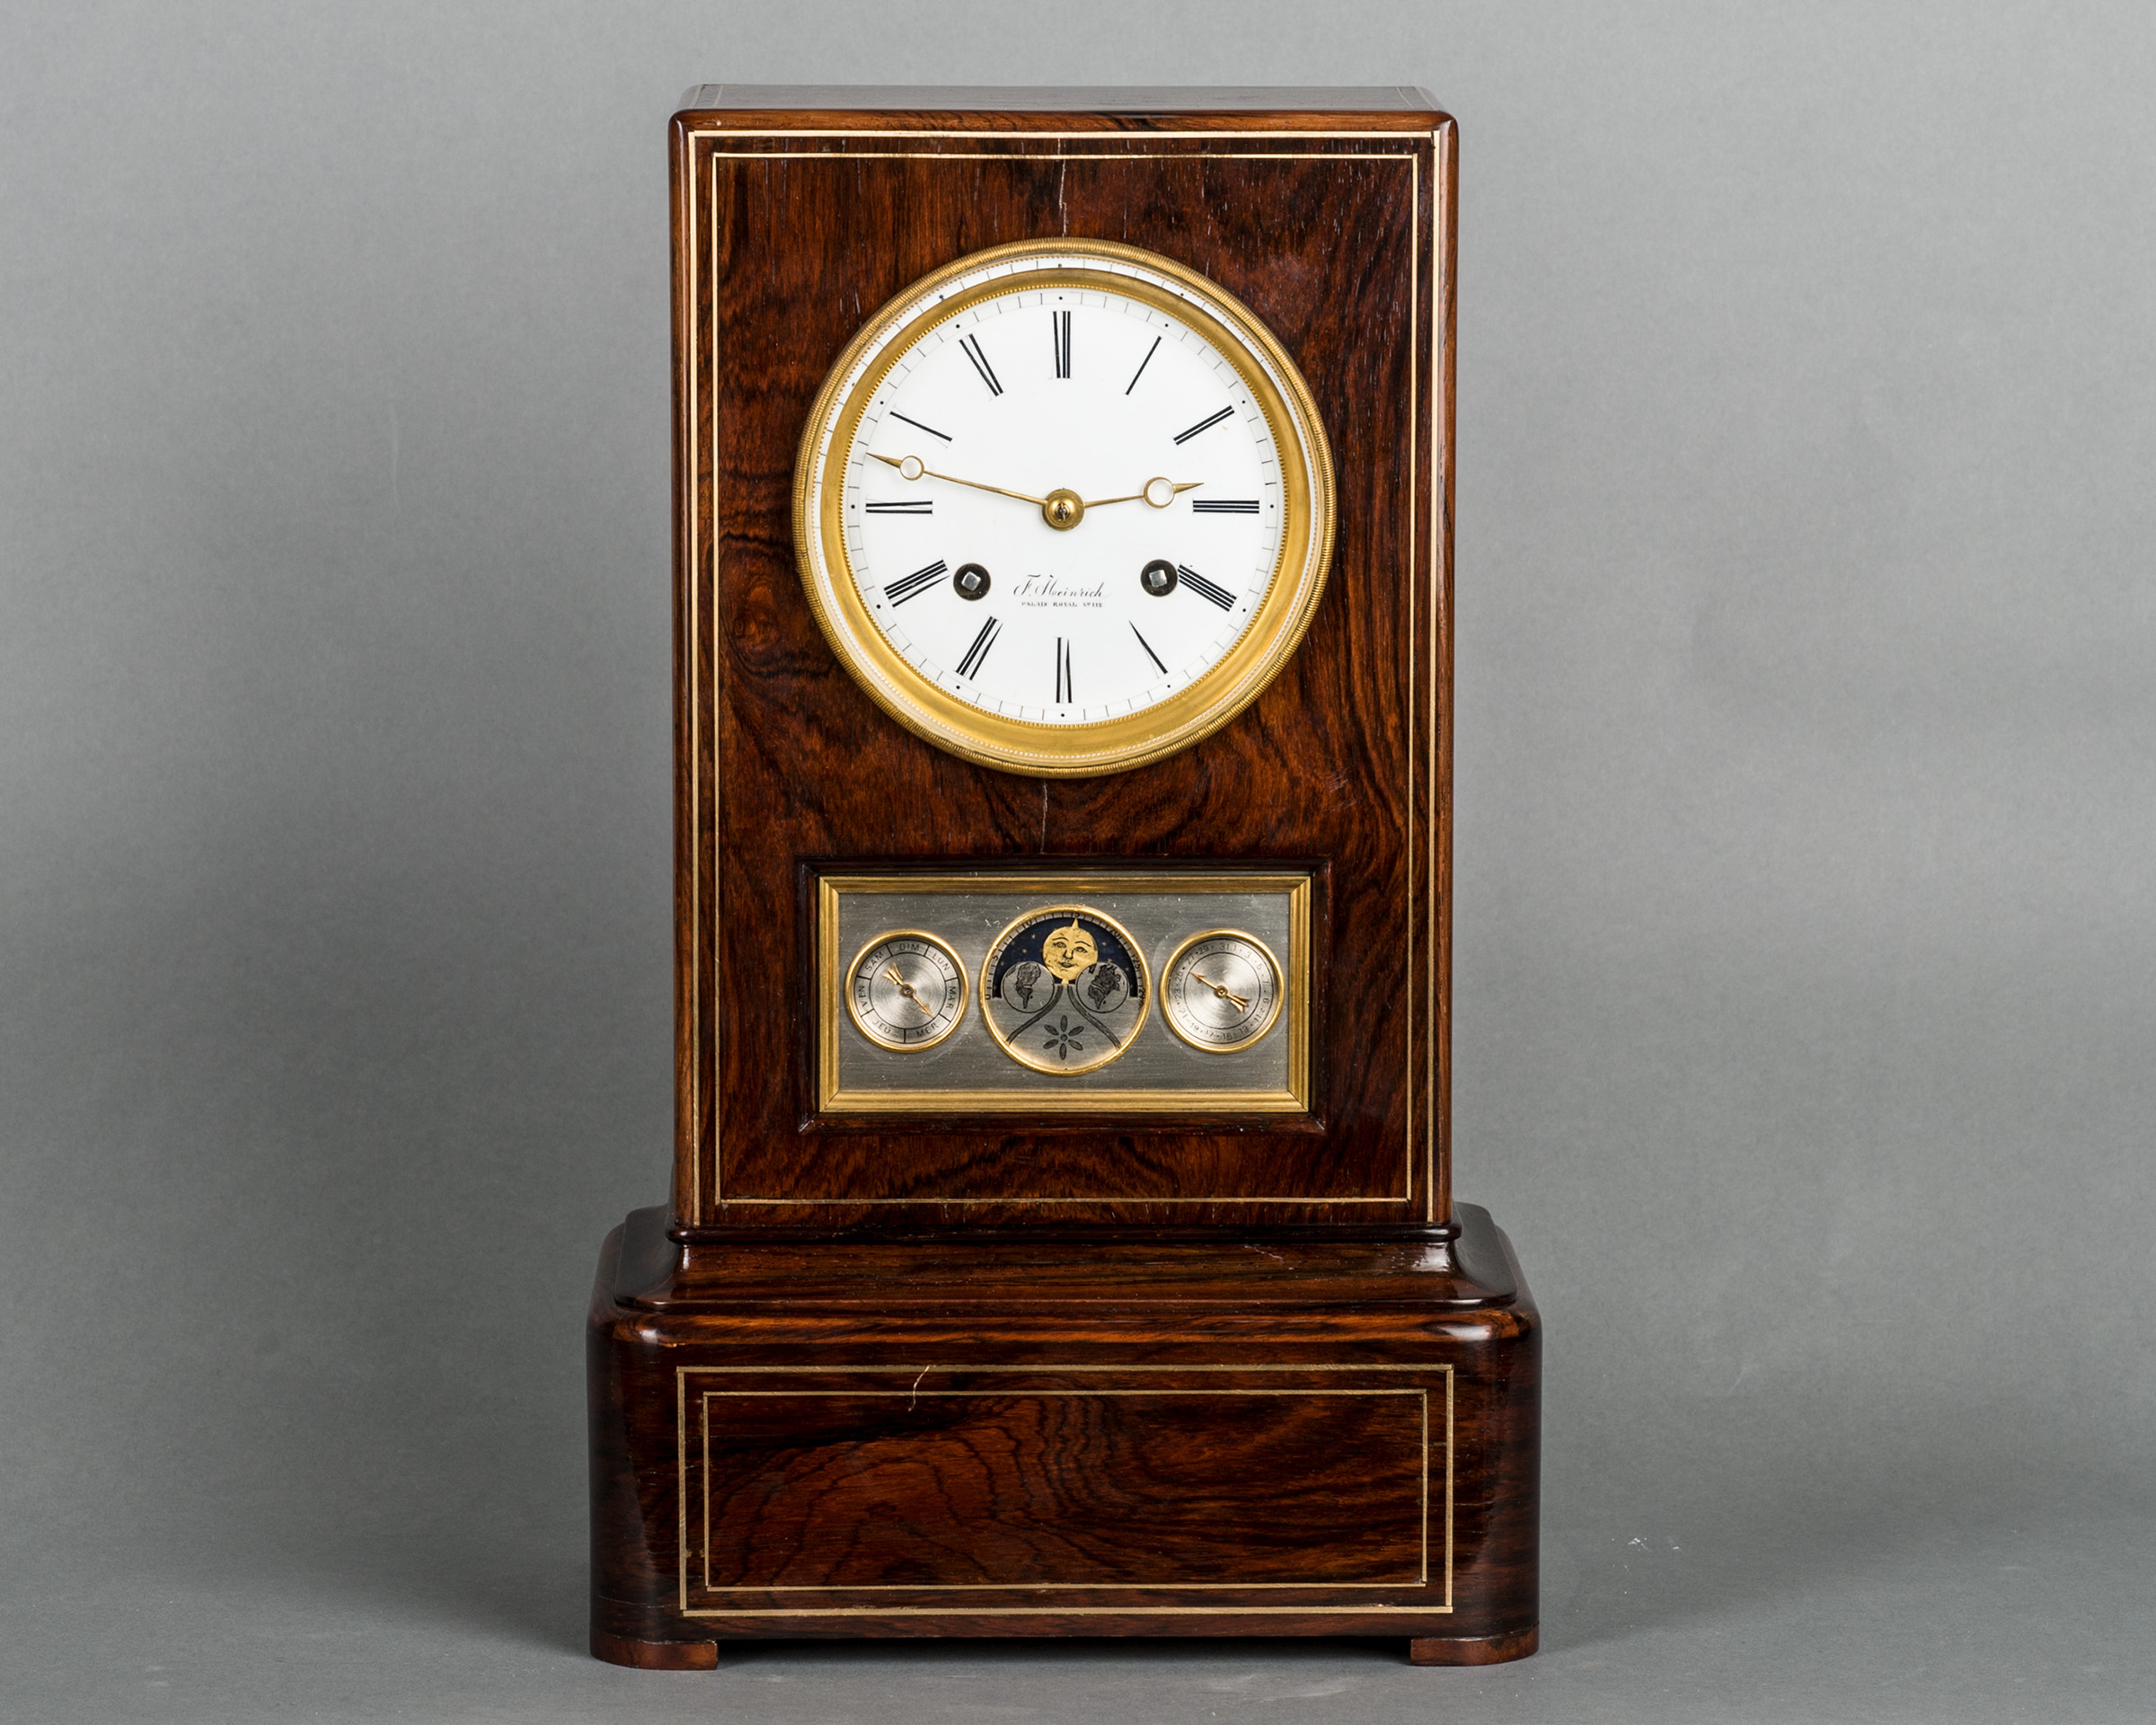 The unusual kingwood mantel clock with calendar work and moon fase, circa 1840